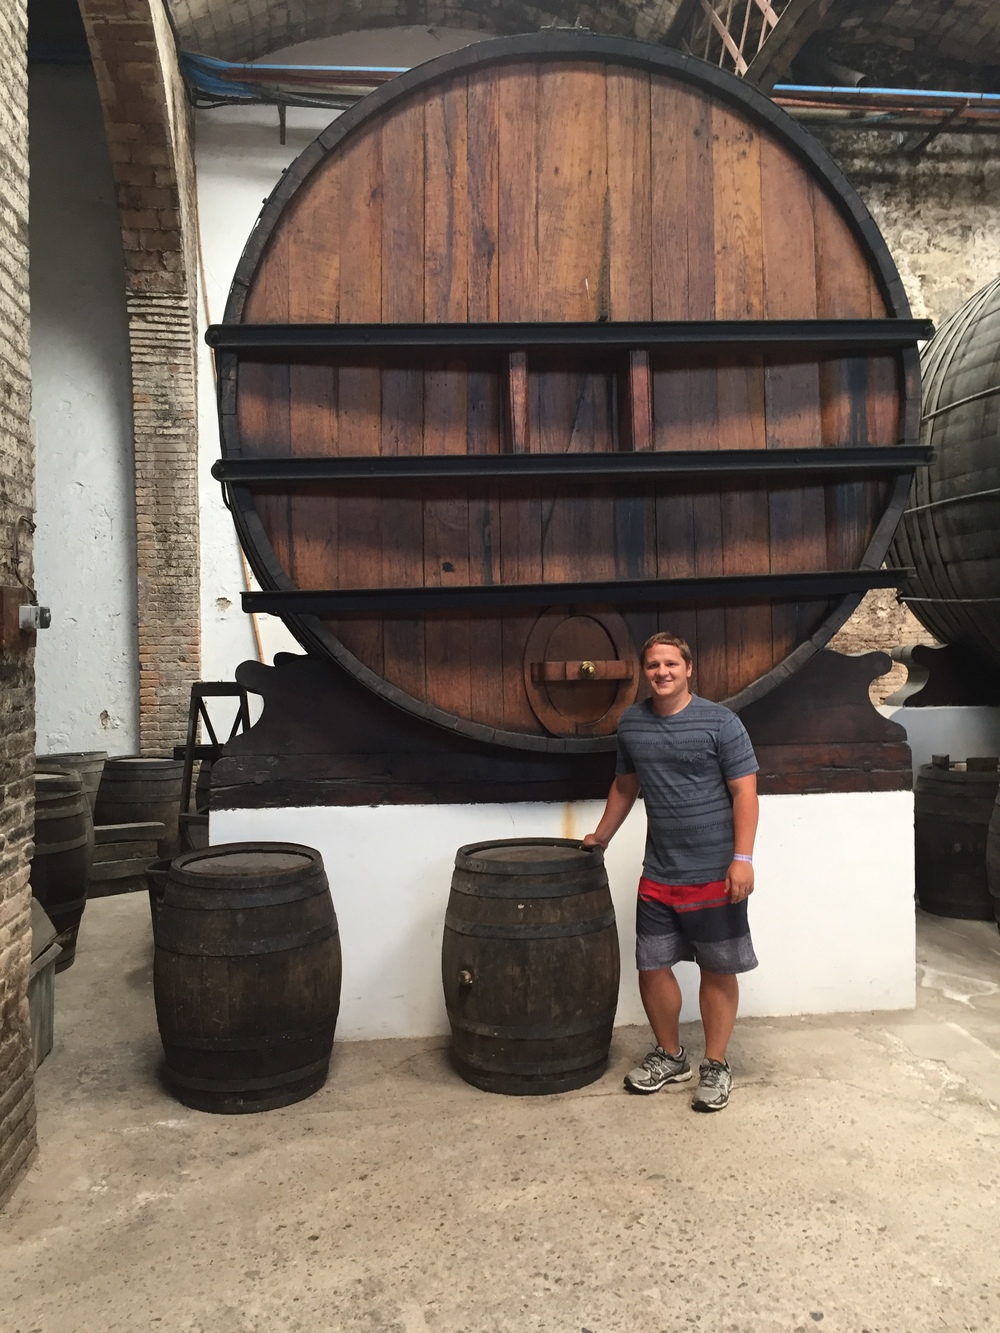 One of the massive vats they used to use to store their wine. And I'm not sure who the guy is.